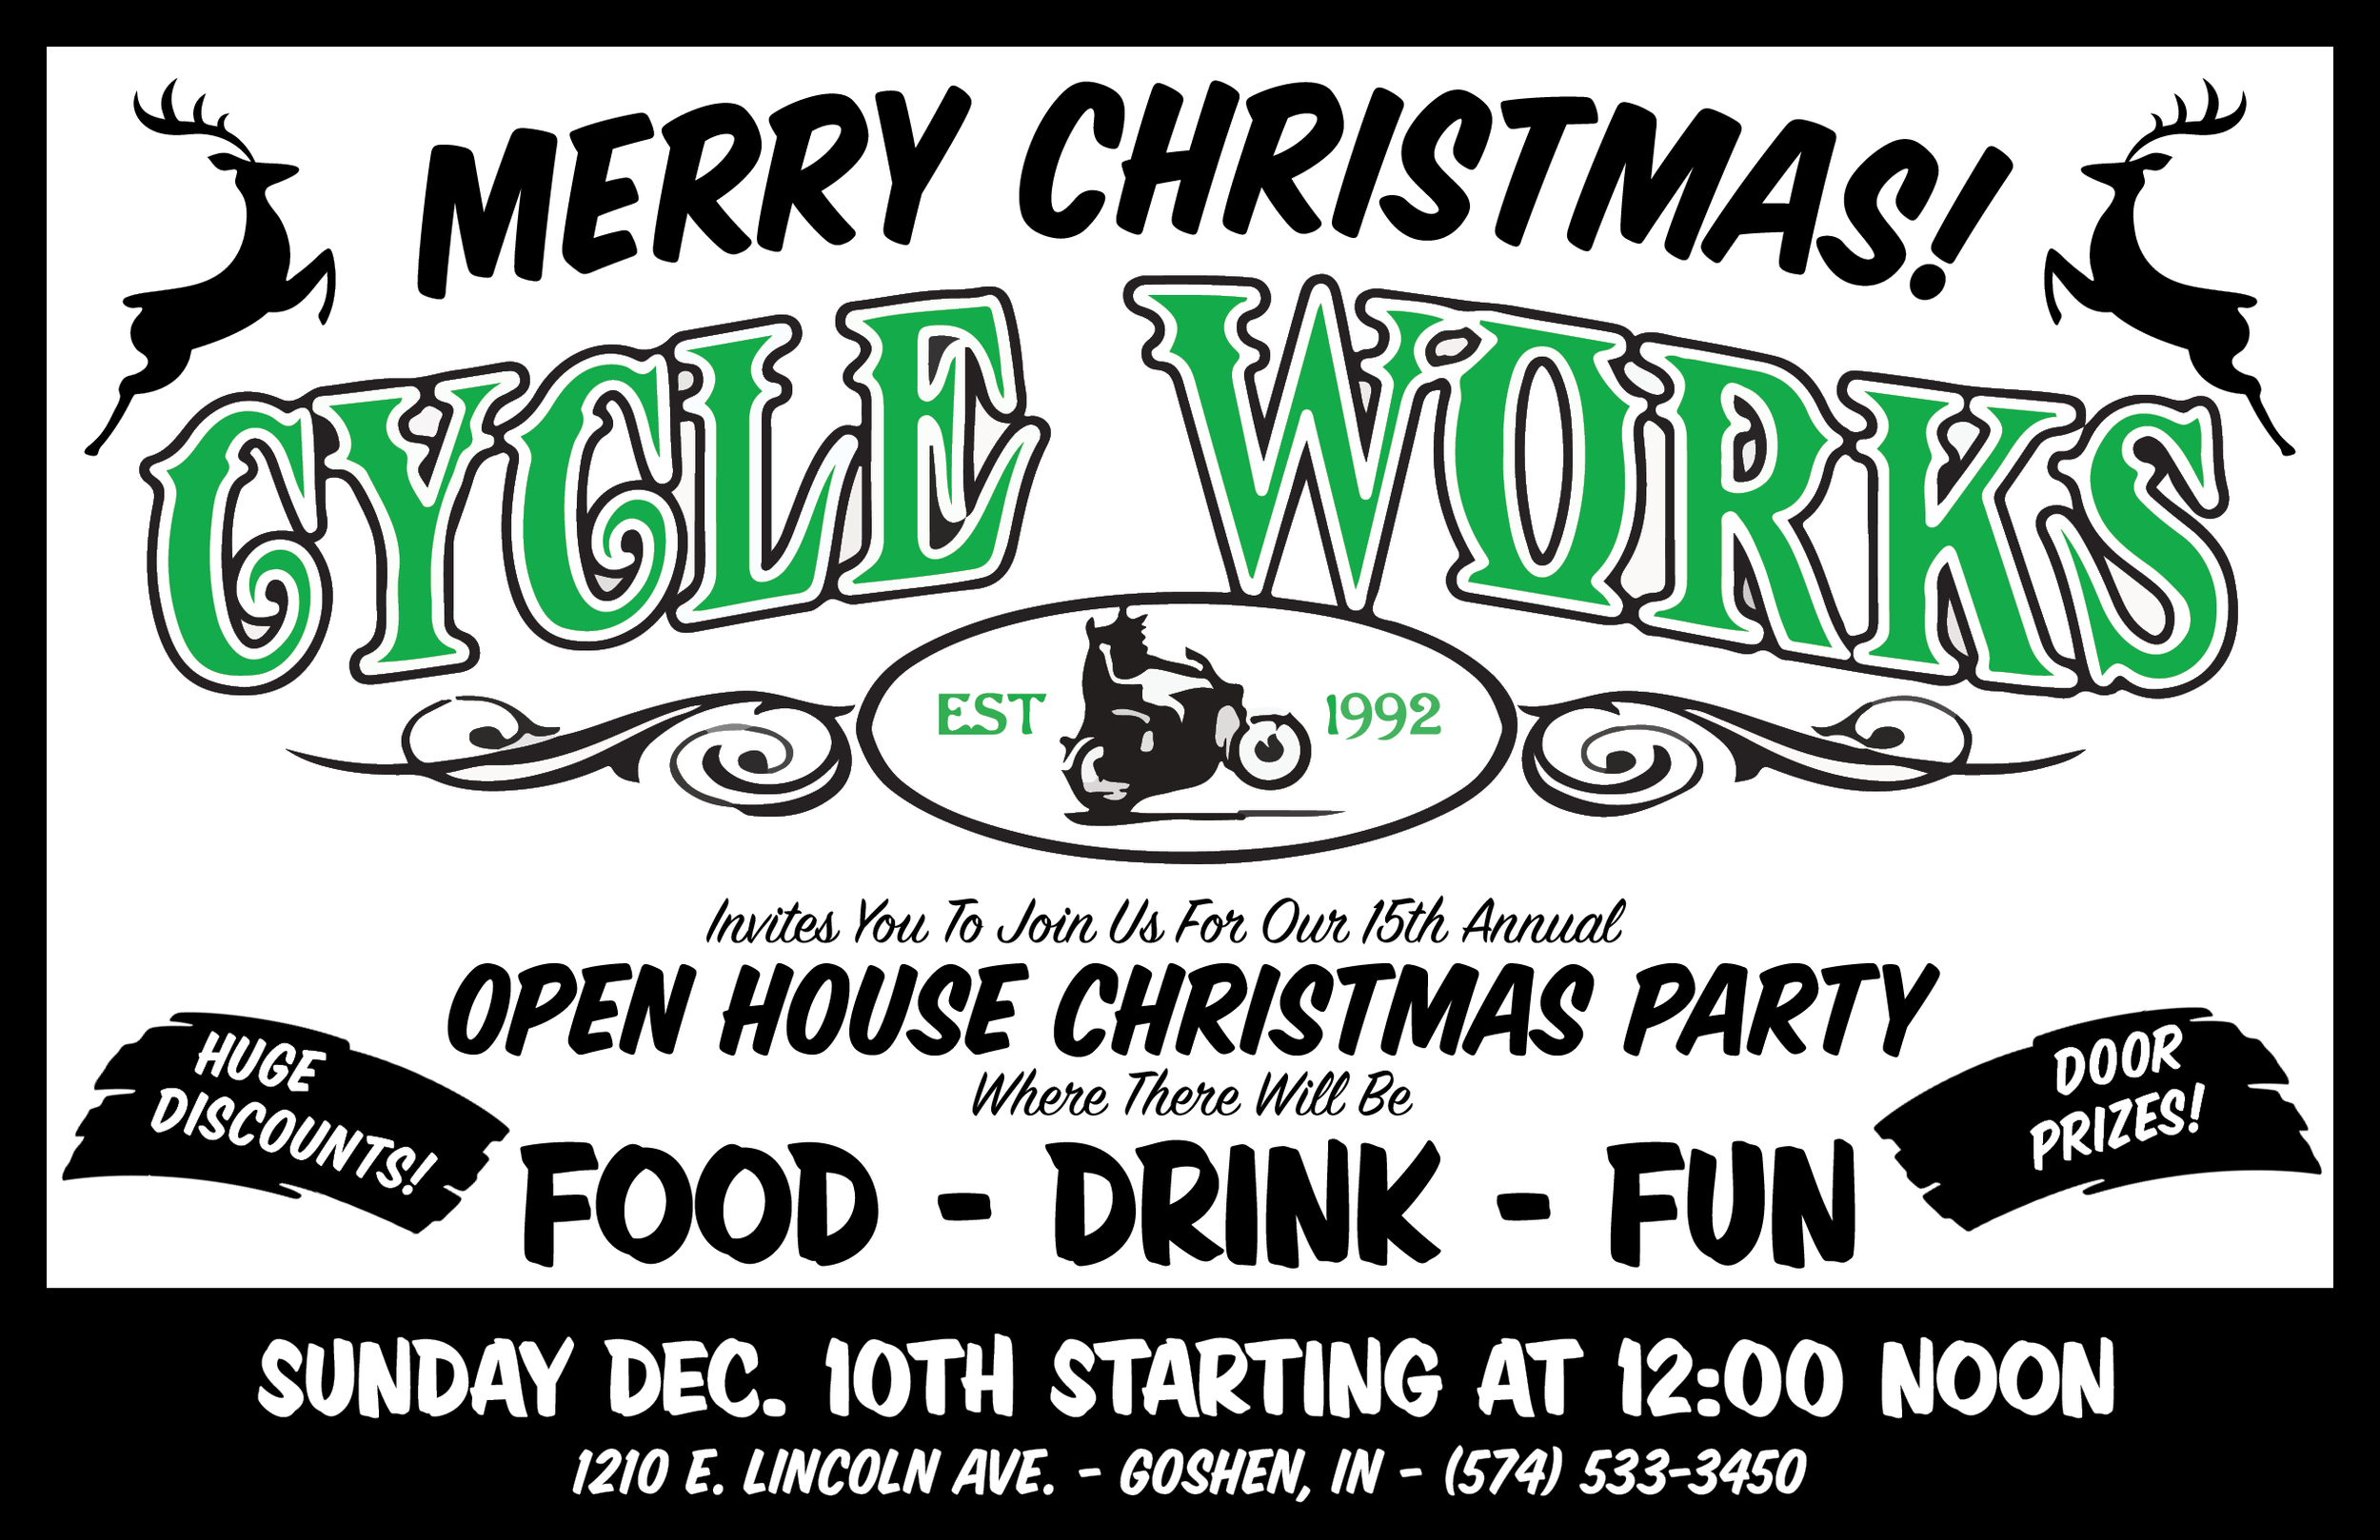 Cycle Works Christmas 2017.png